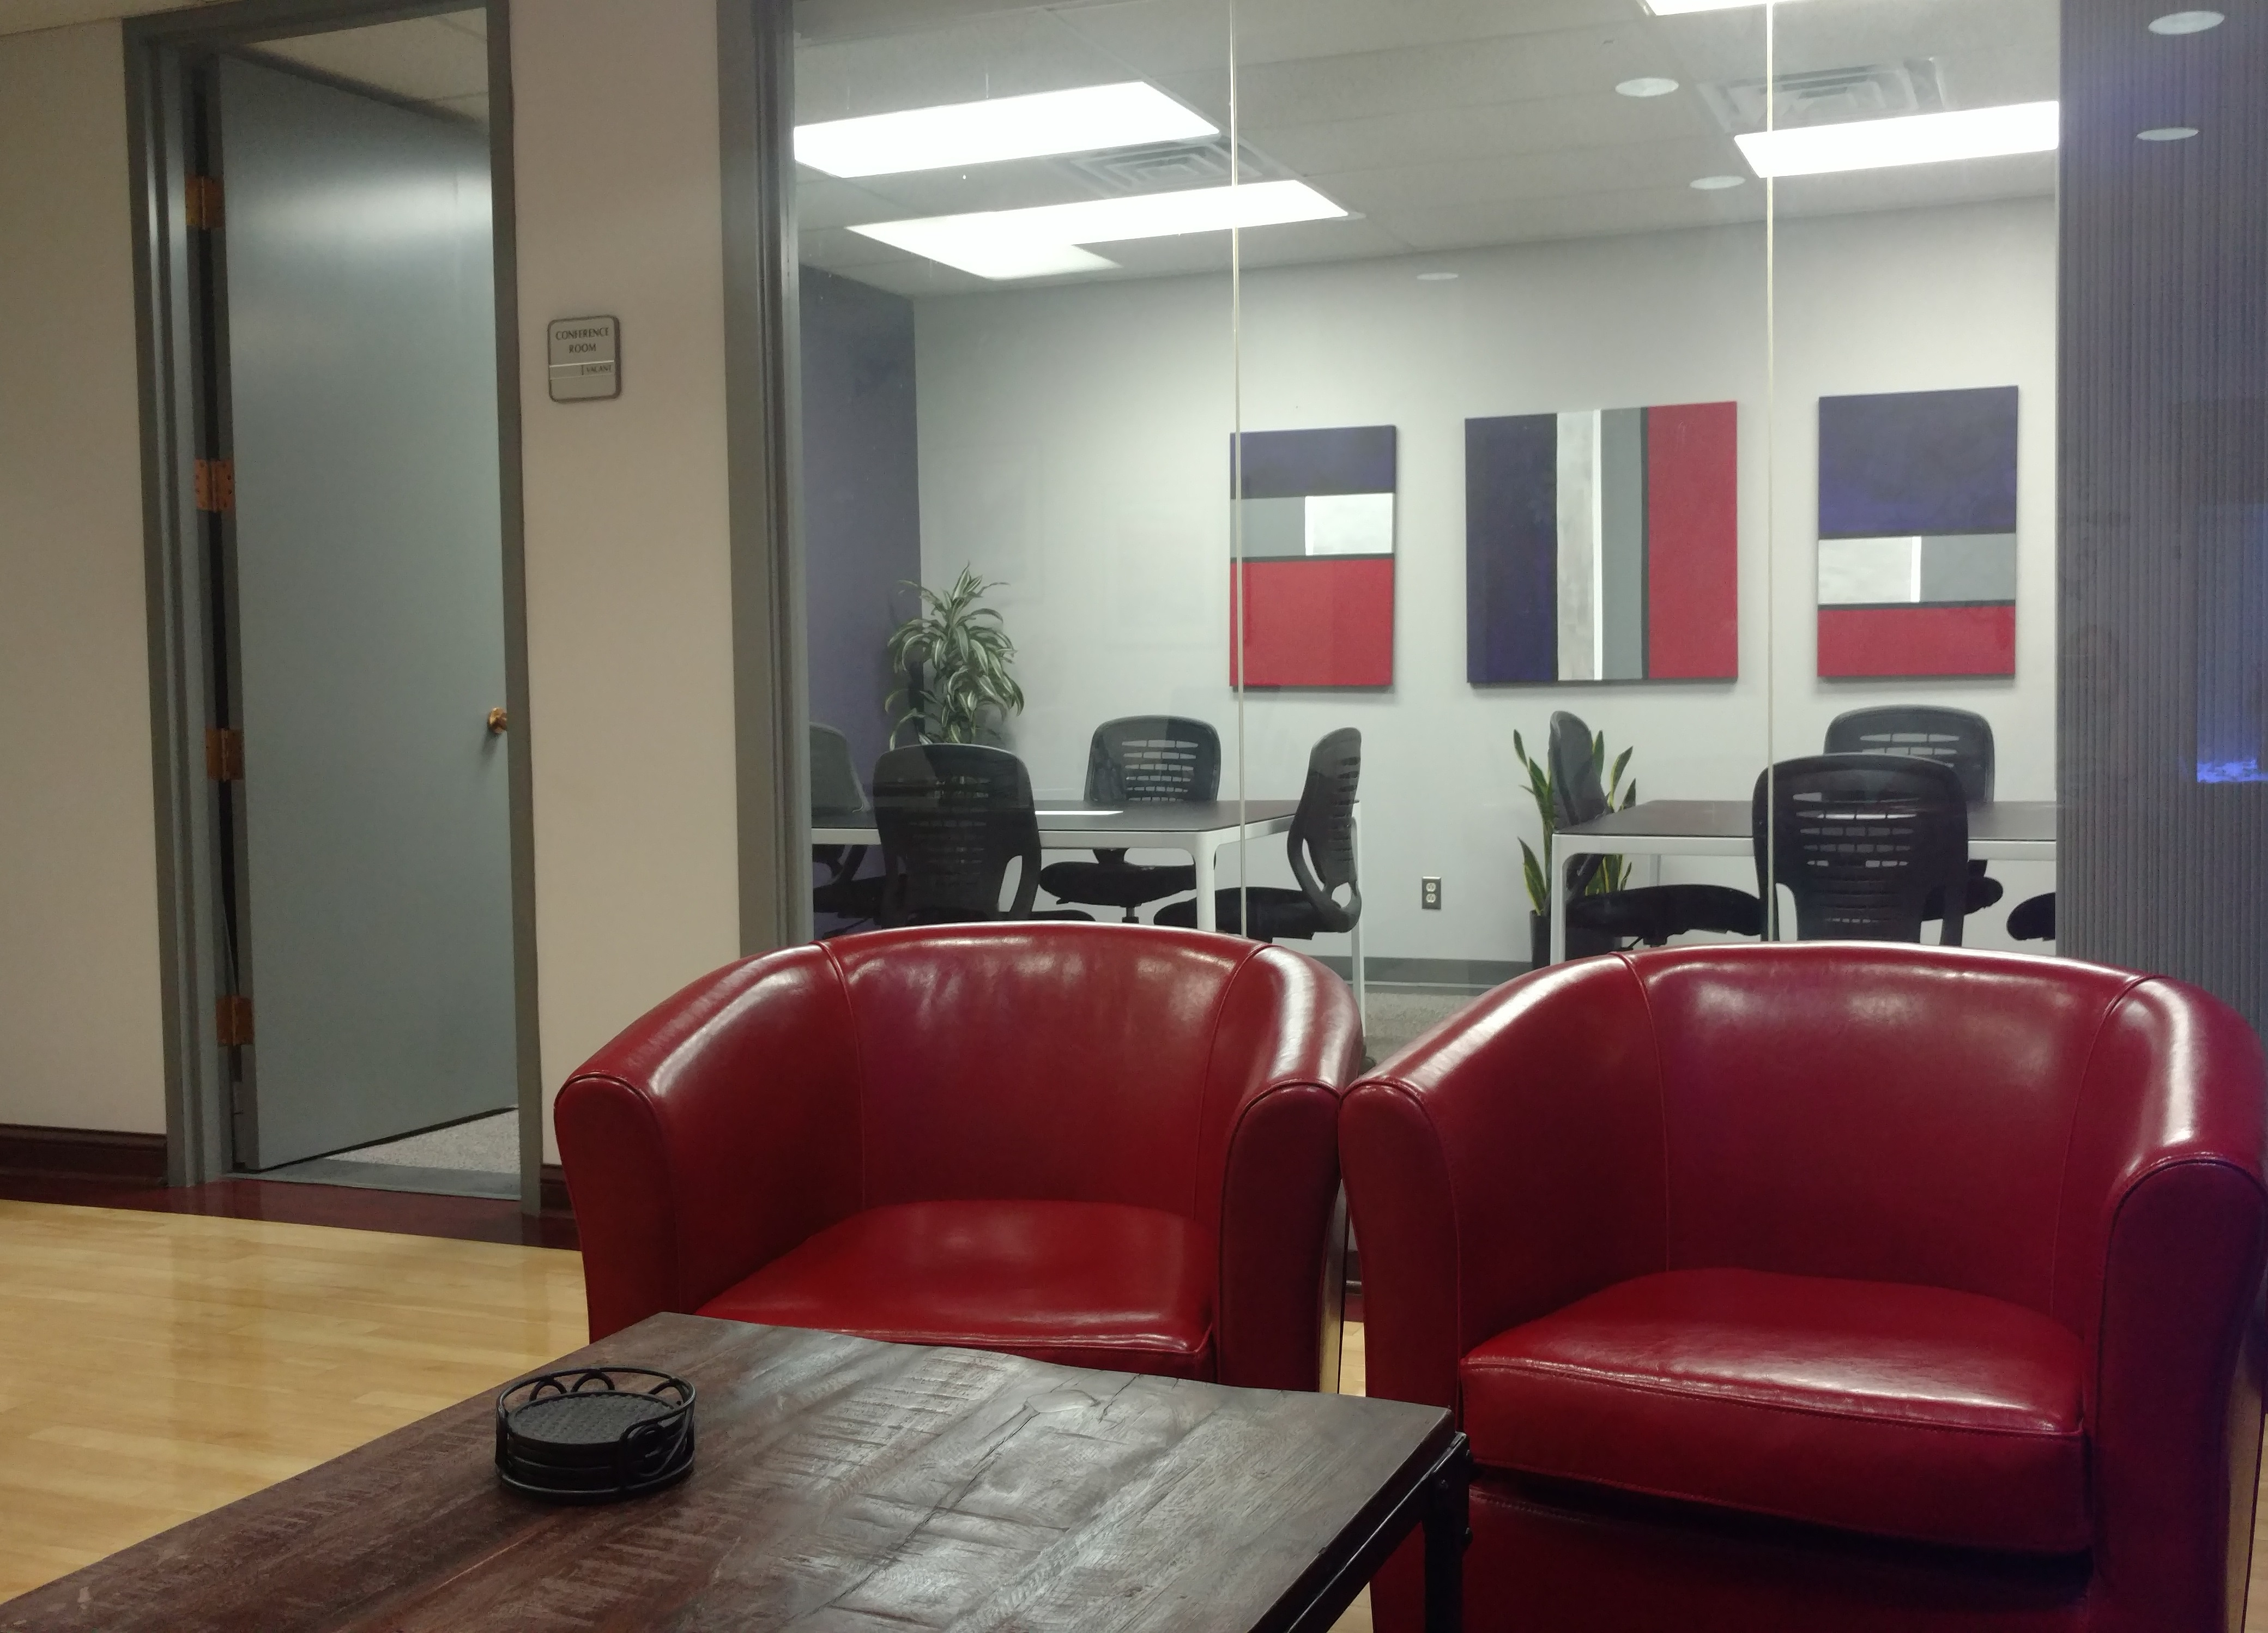 Nashville Office Space Reception Area And Meeting Room